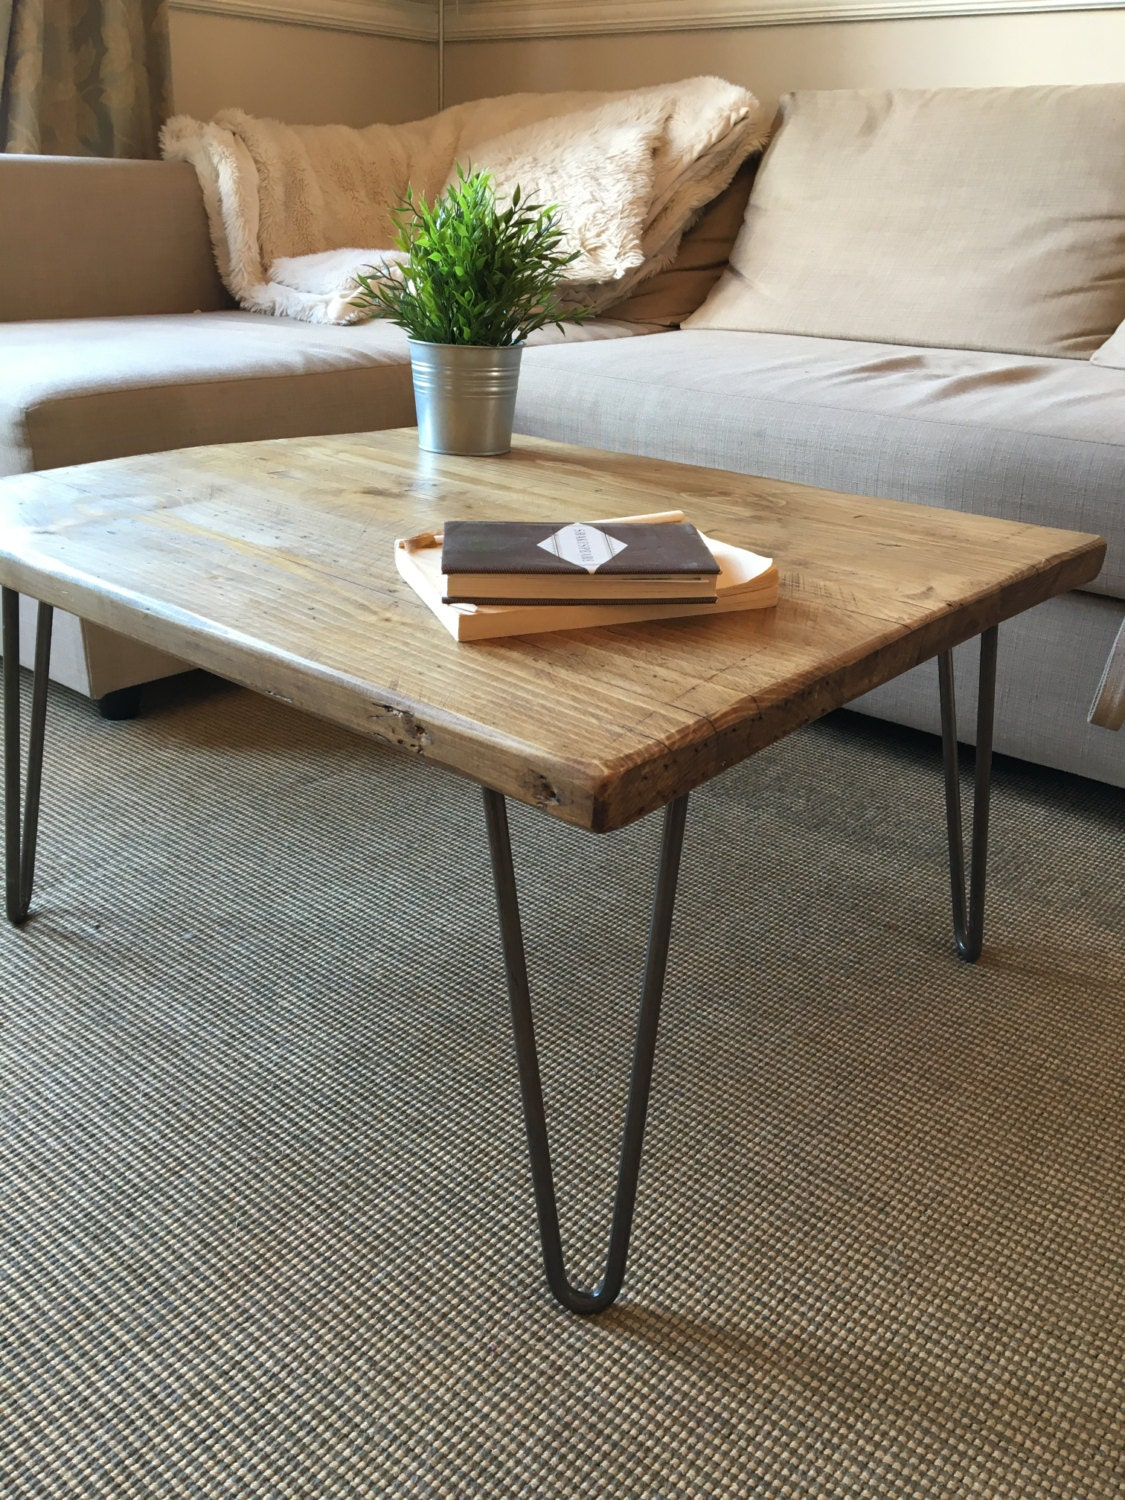 Rustic Wooden Coffee Table Made From Reclaimed Scaffold Boards